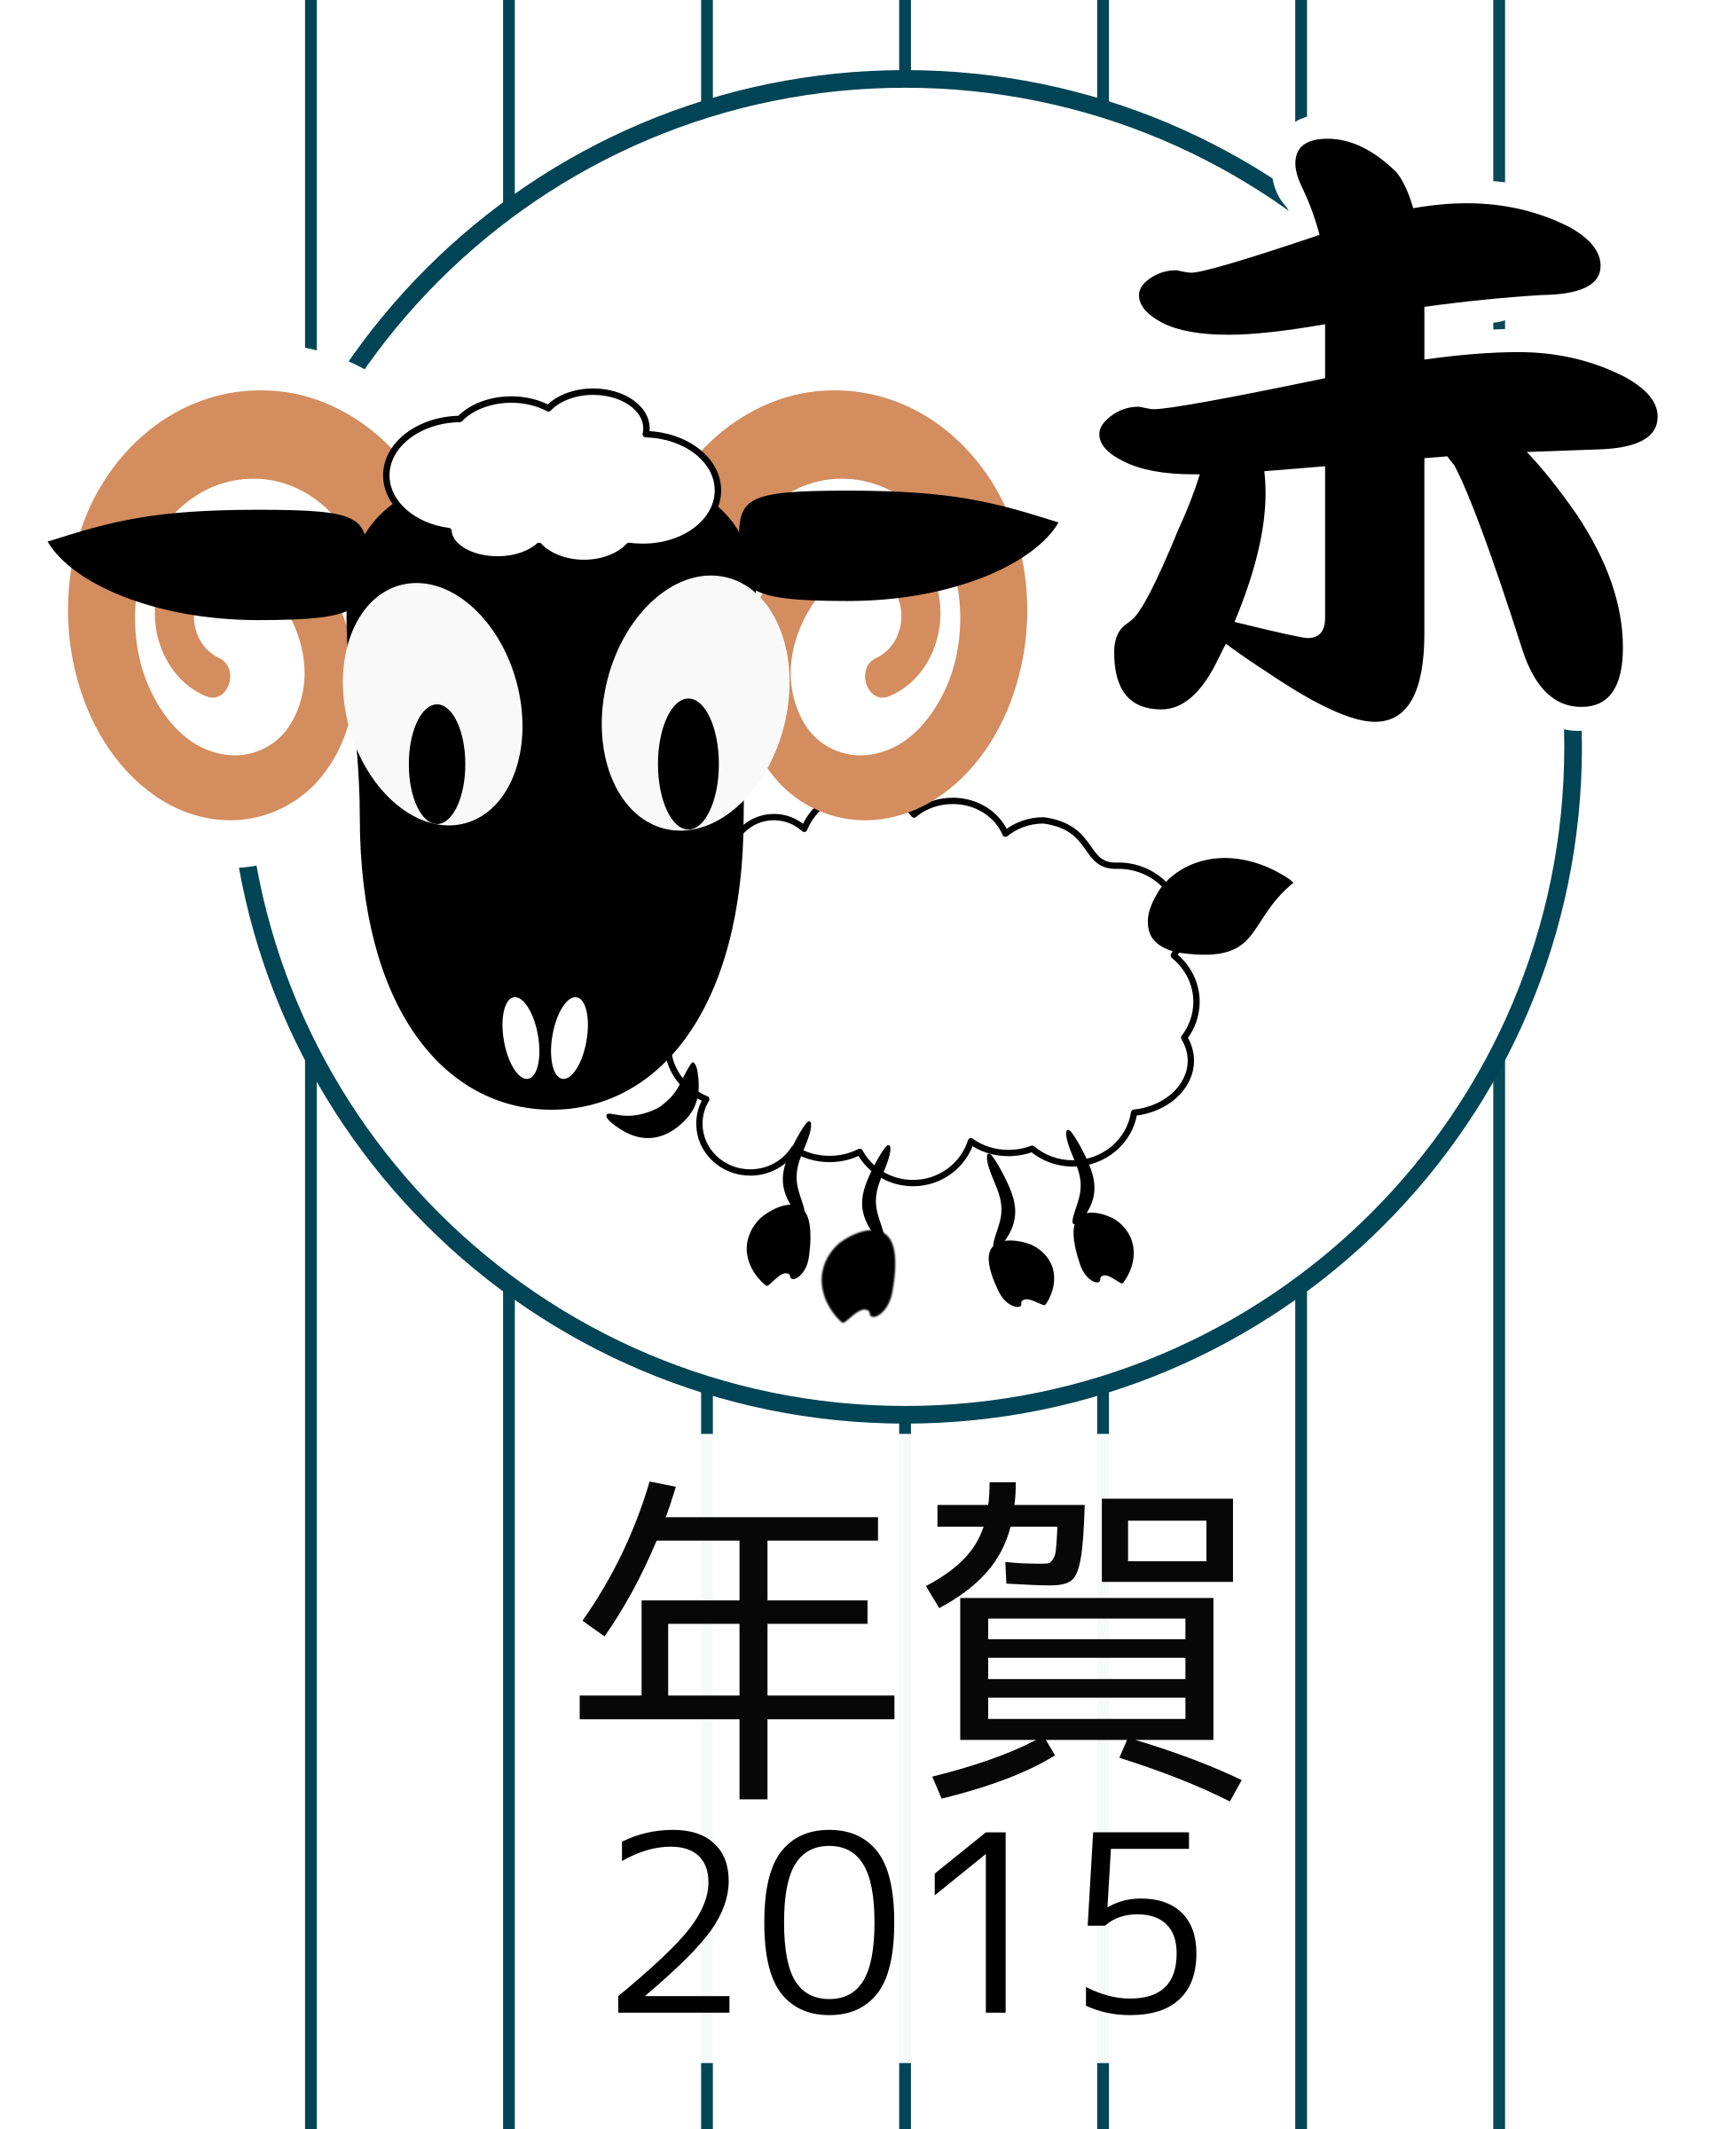 Chinese zodiac ram - Japanese version - 2015 by uroesch